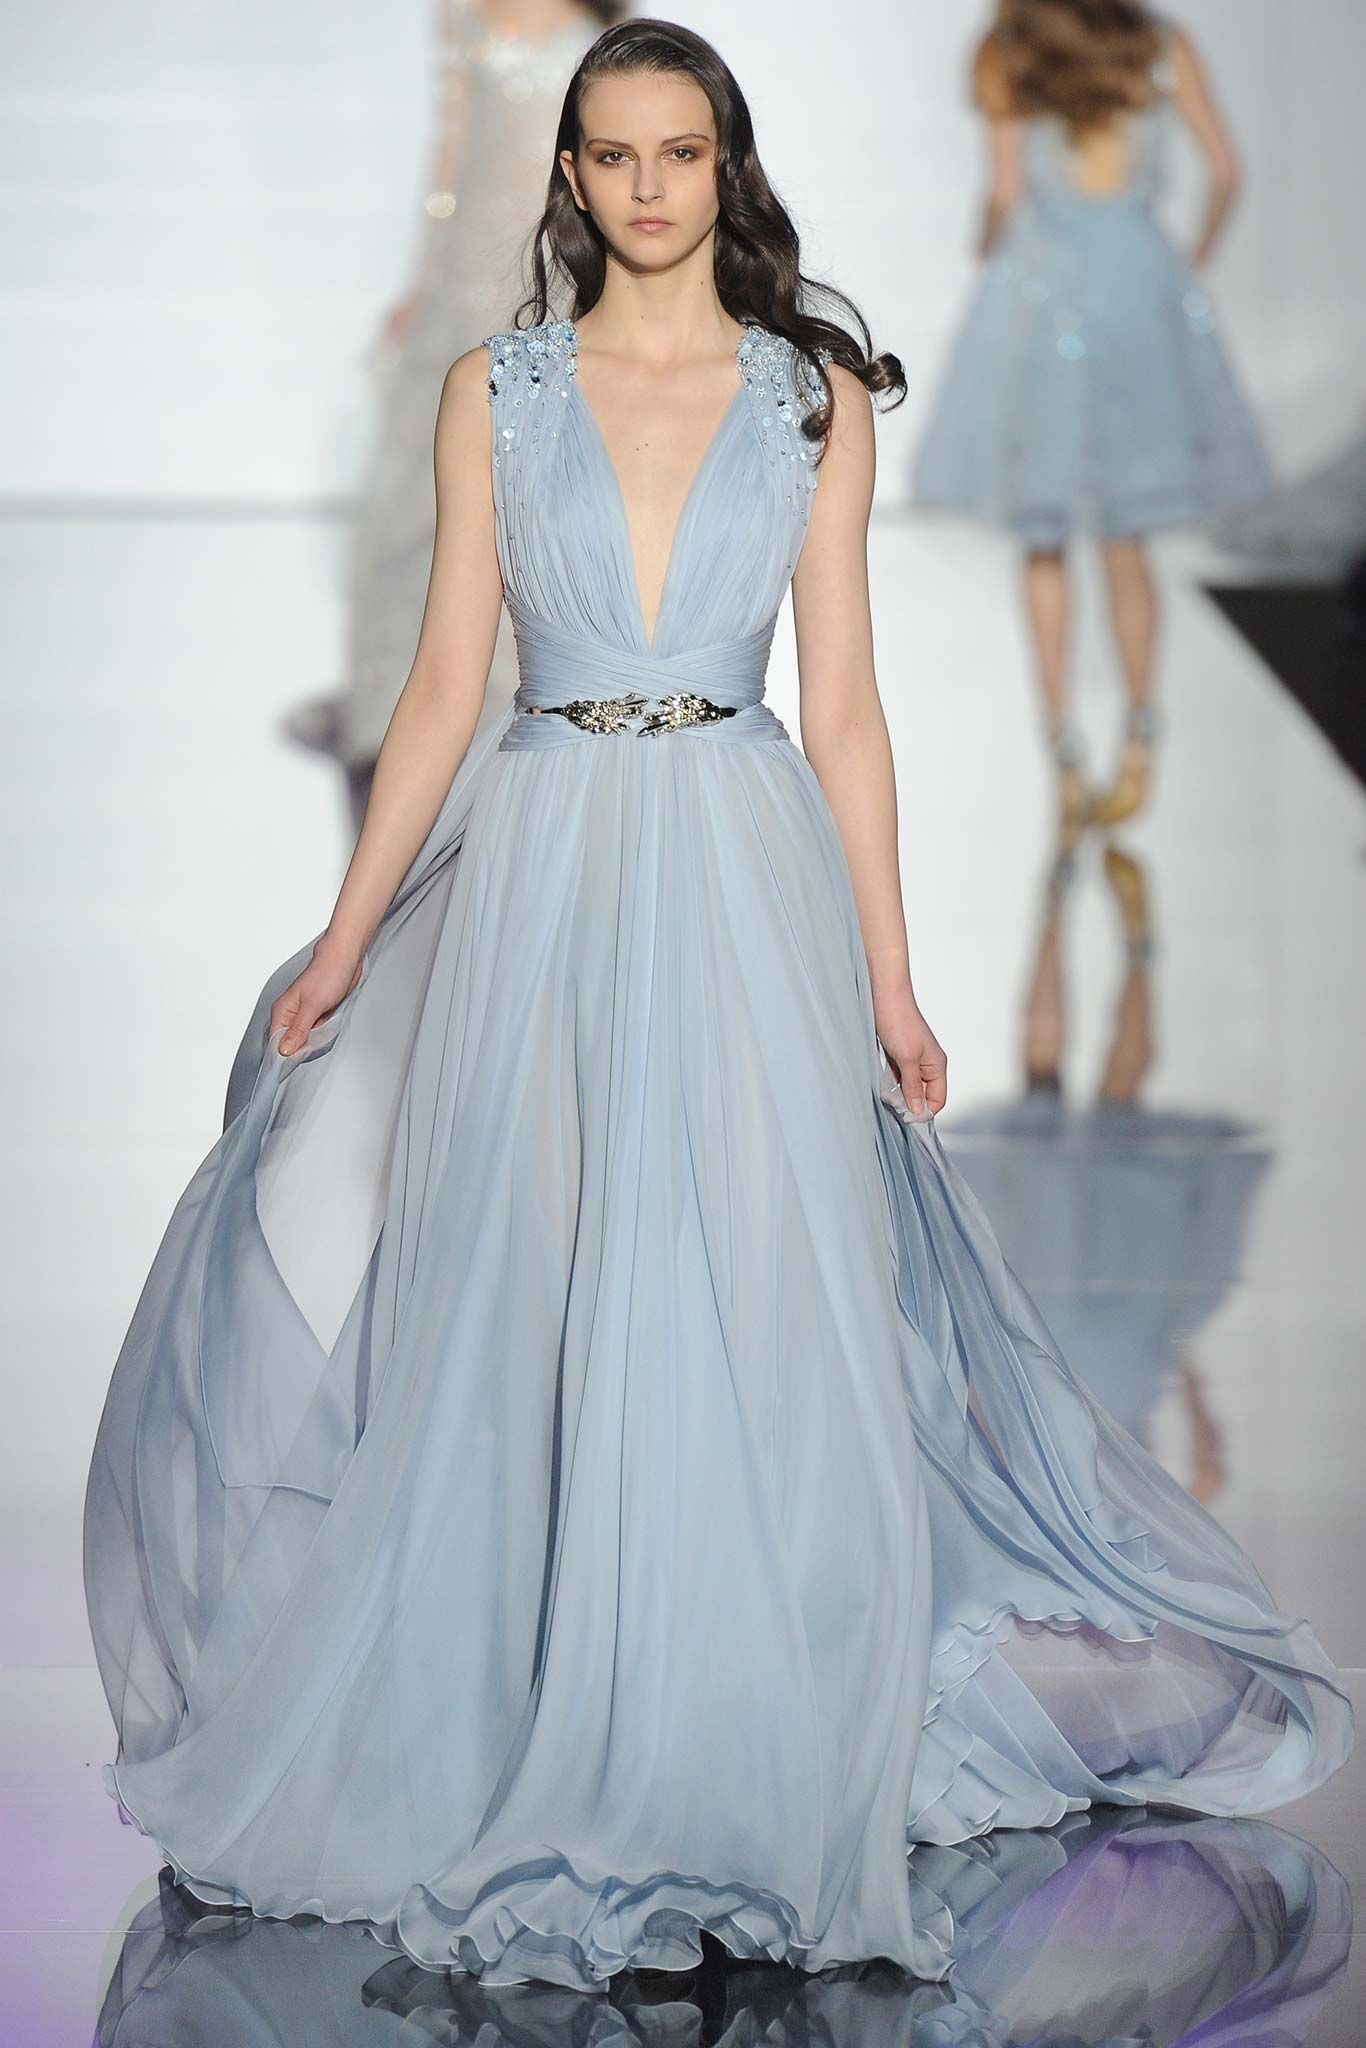 Runway zuhair murad spring couture collection gorgeous gowns